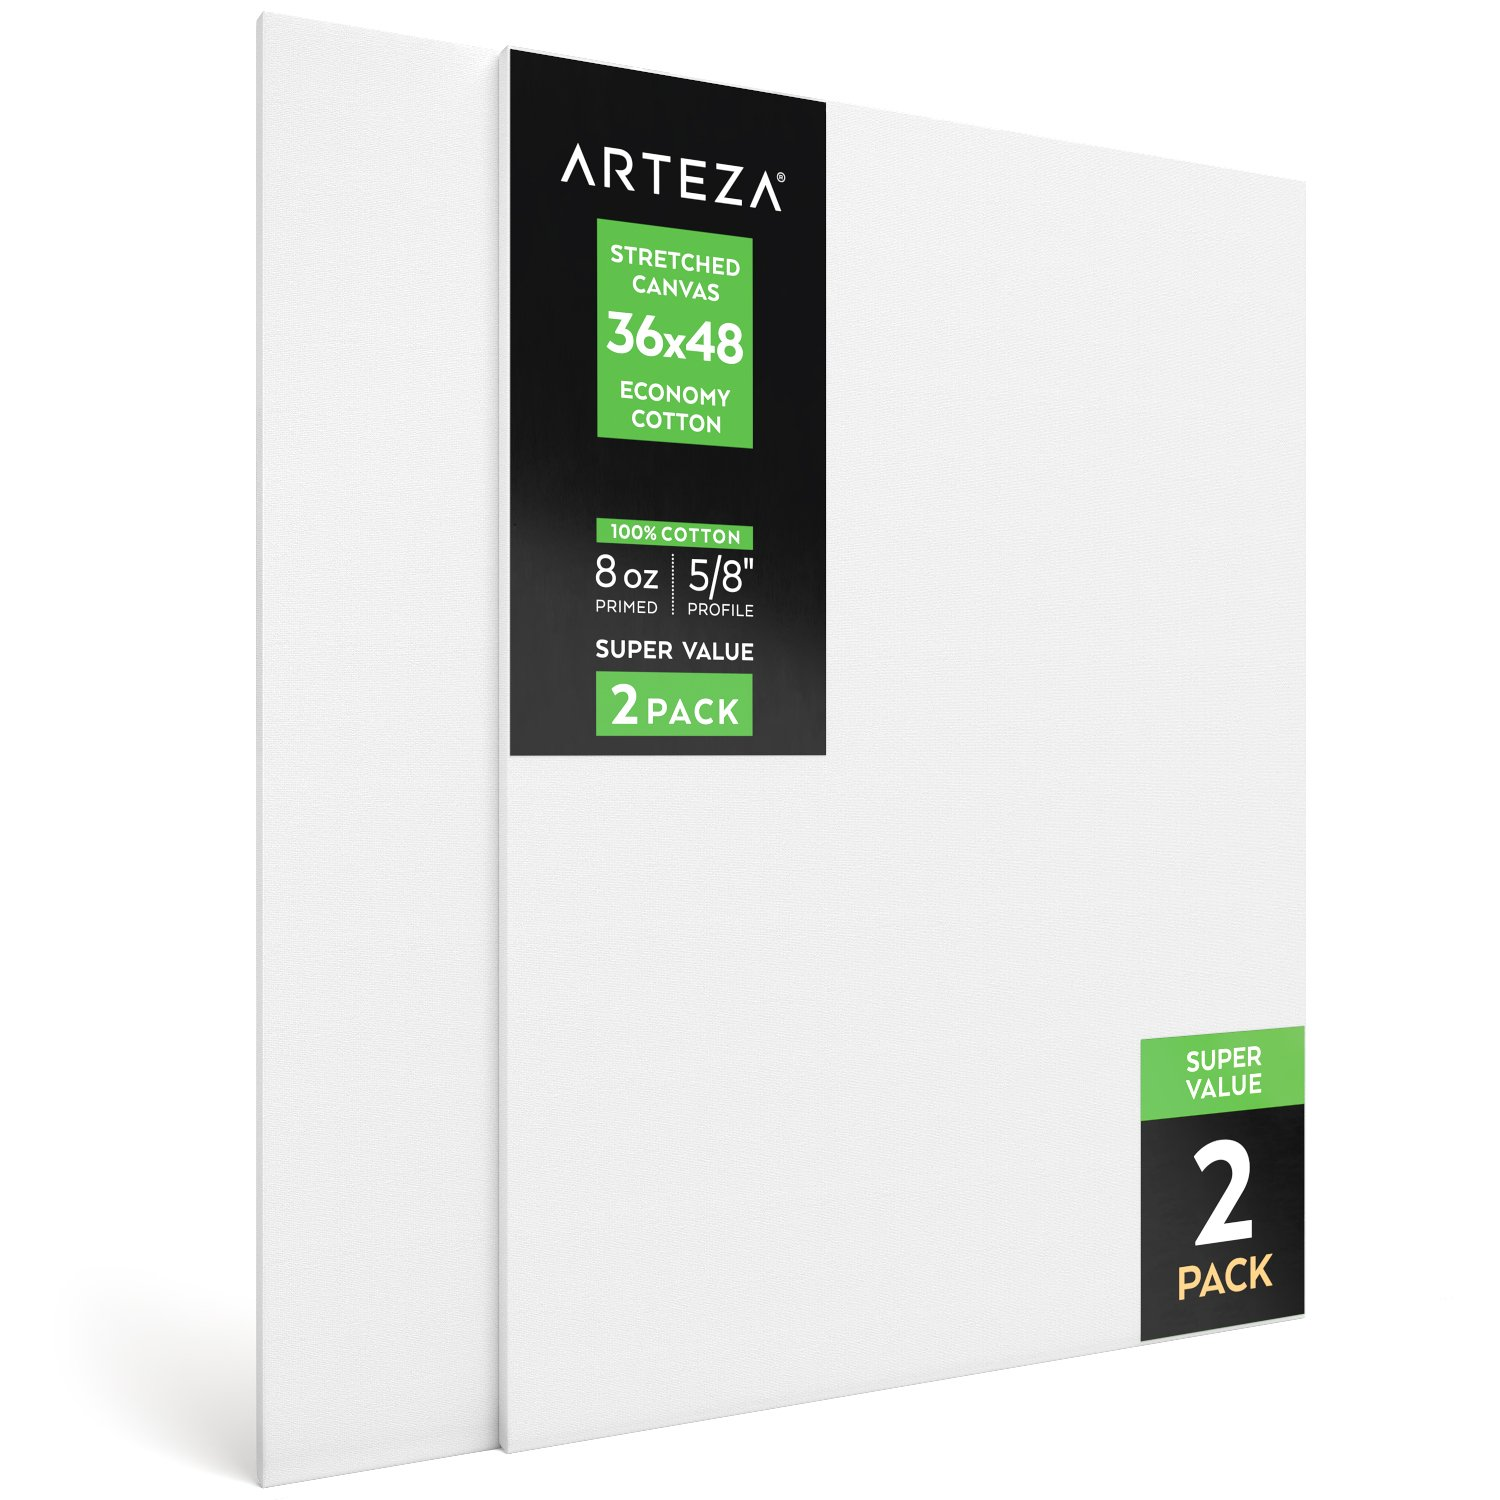 """Arteza 36x48"""" Stretched White Blank Canvas, Bulk Pack of 2, Primed, 100% Cotton for Painting, Acrylic Pouring, Oil Paint & Wet Art Media, Canvases for Professional Artist, Hobby Painters & Beginner"""